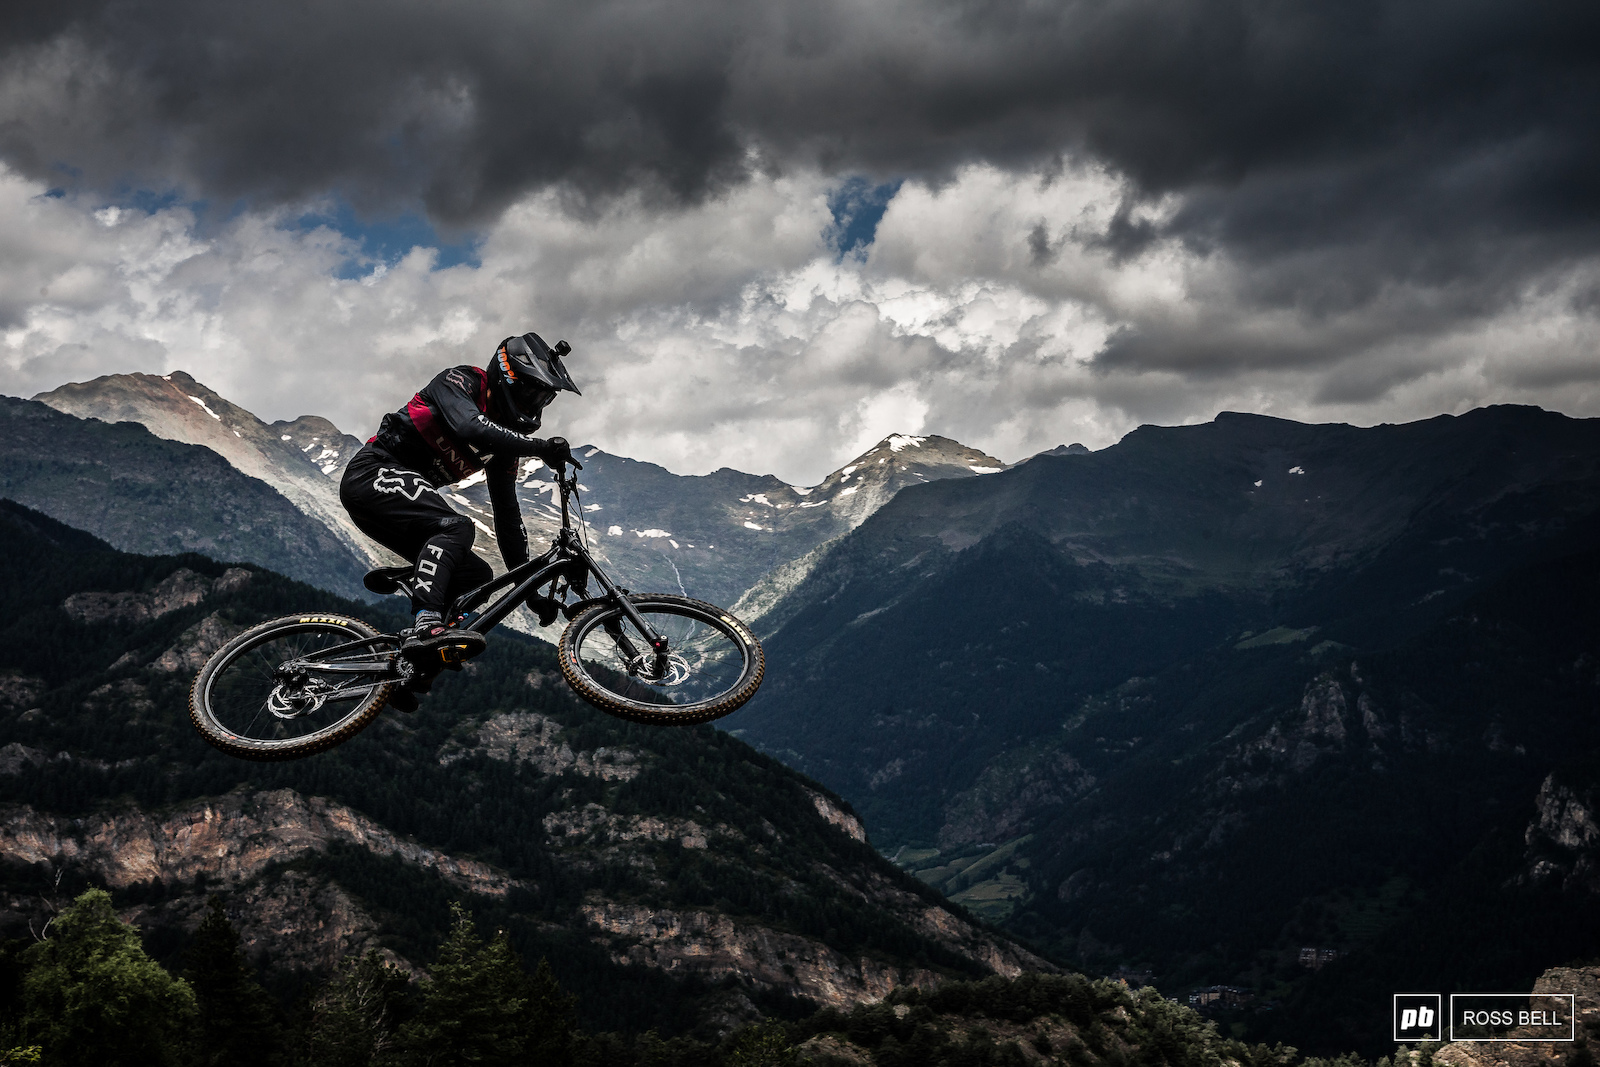 Greg Williamson boosts above the stunning Pyrenees backdrop that engulfs the track s surroundings. He s hungry to right the wrongs of last week where he got caught out in the qualifying chaos.